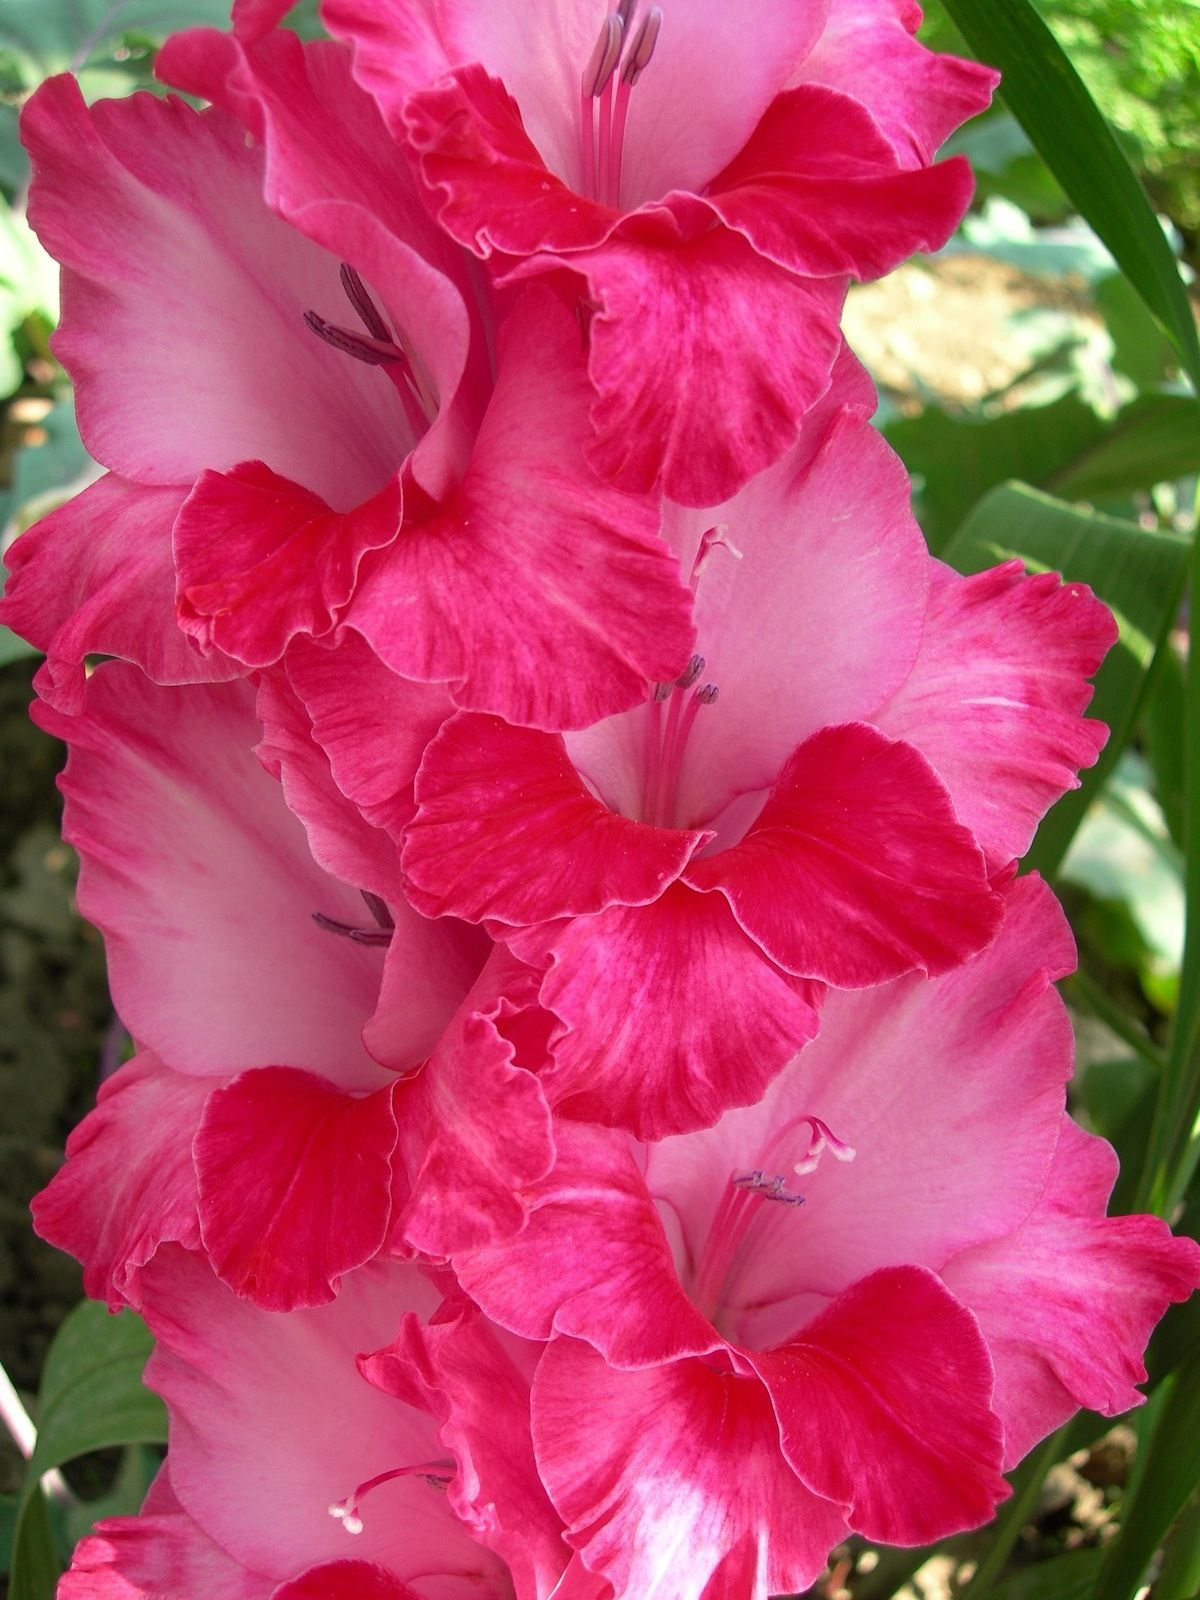 Gladiolas mean strength of character. Flowers, Gladiolus